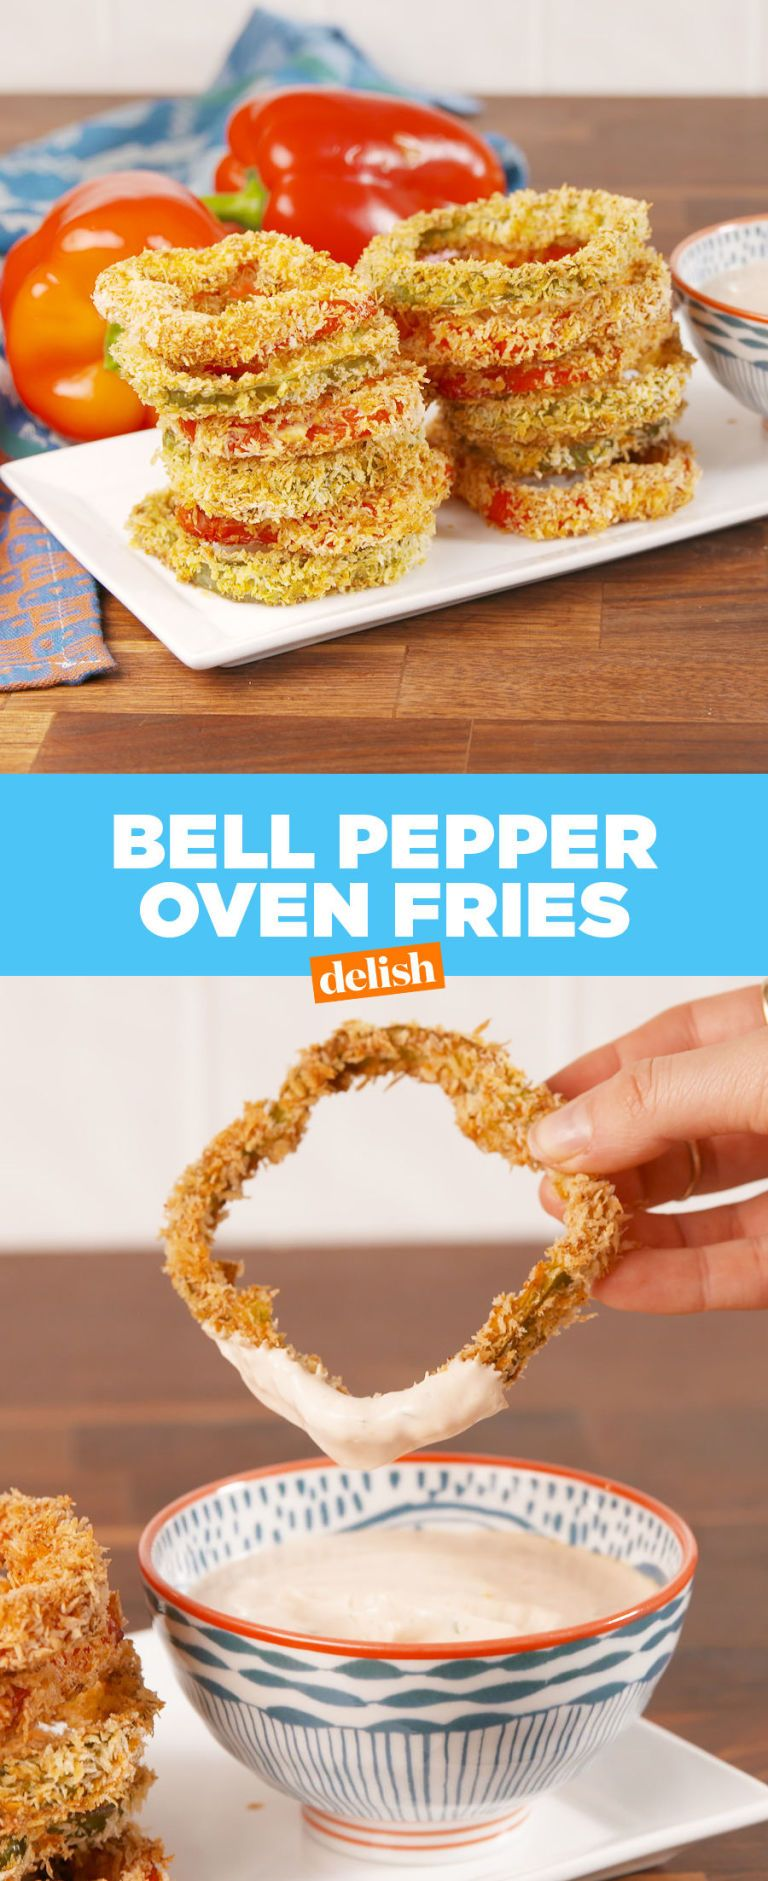 Bell Pepper Oven Fries >>> Onion Rings